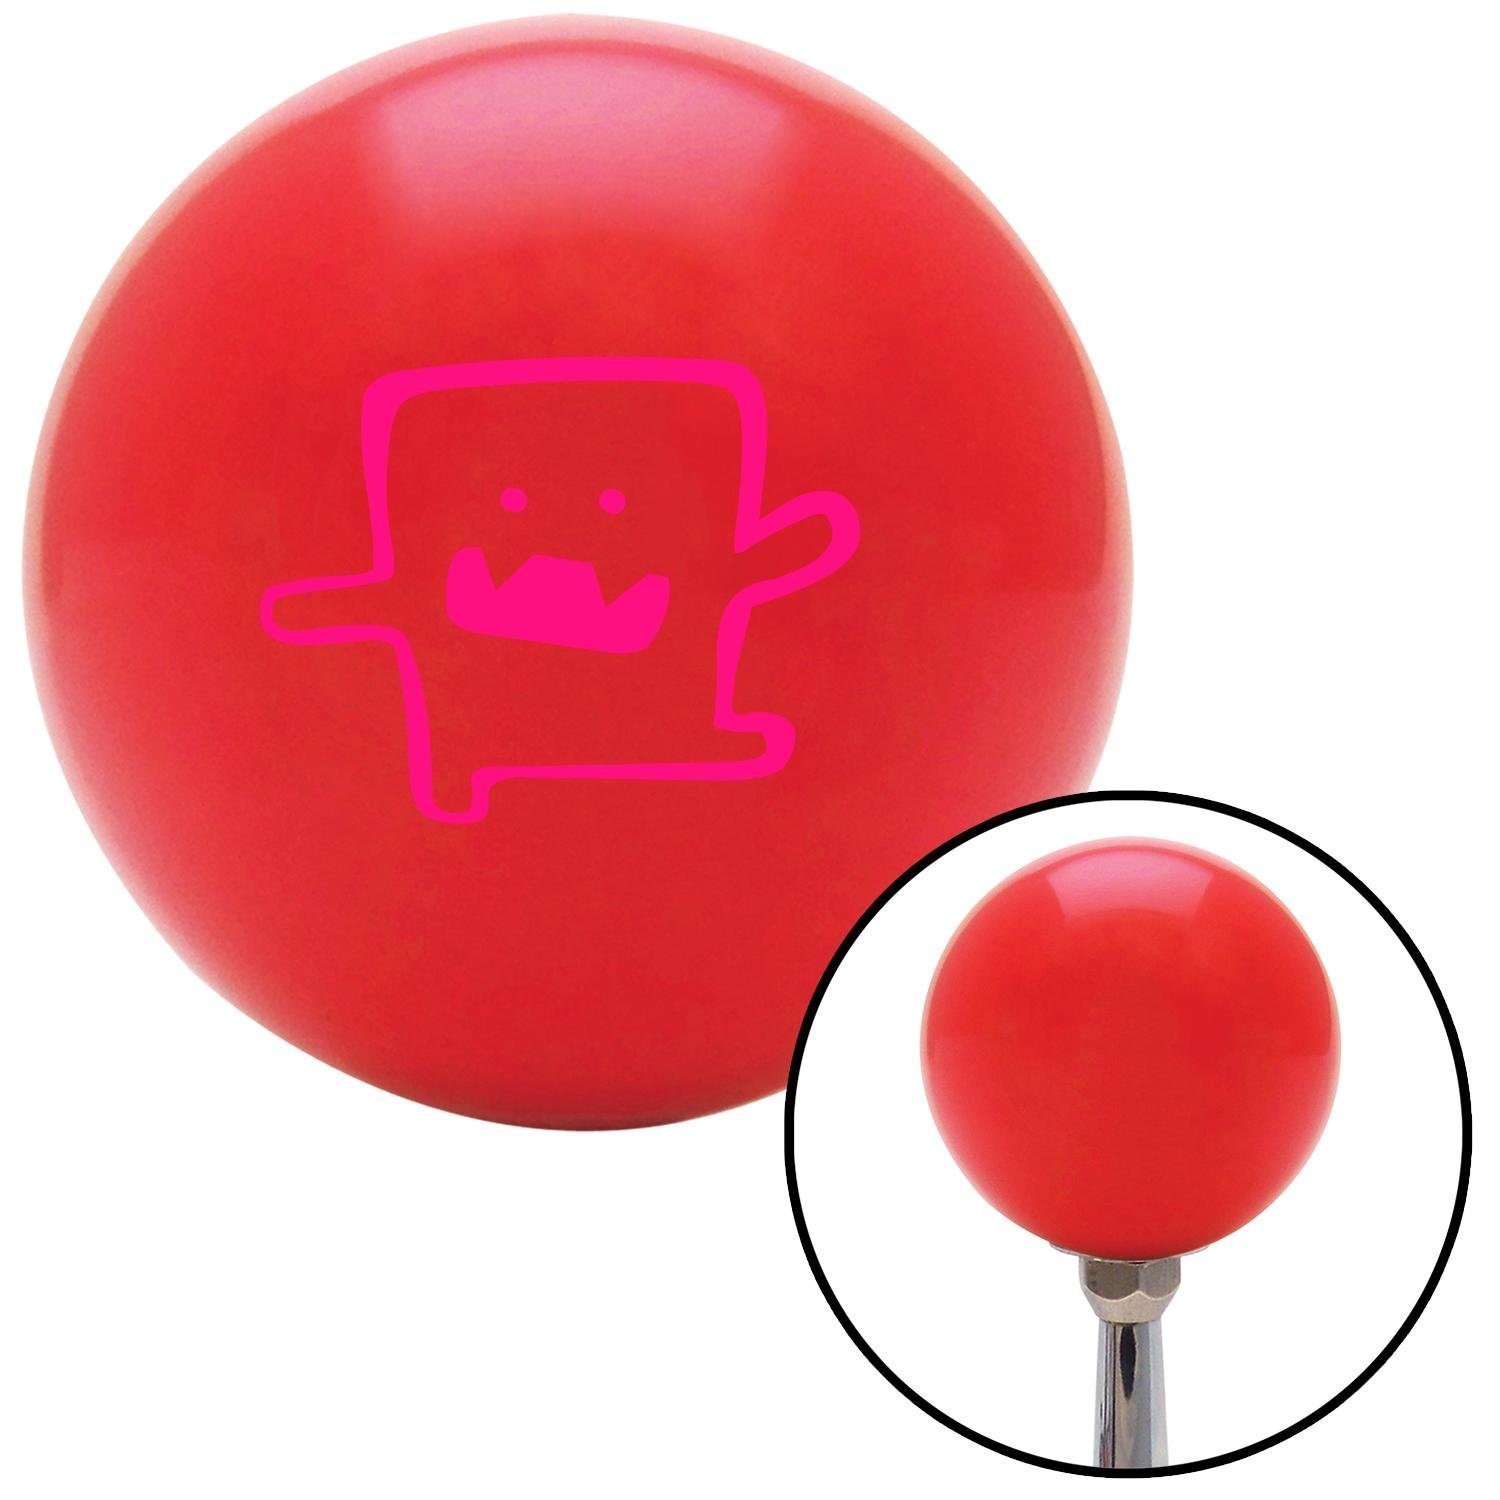 Pink Domo Dancing American Shifter 98998 Red Shift Knob with M16 x 1.5 Insert